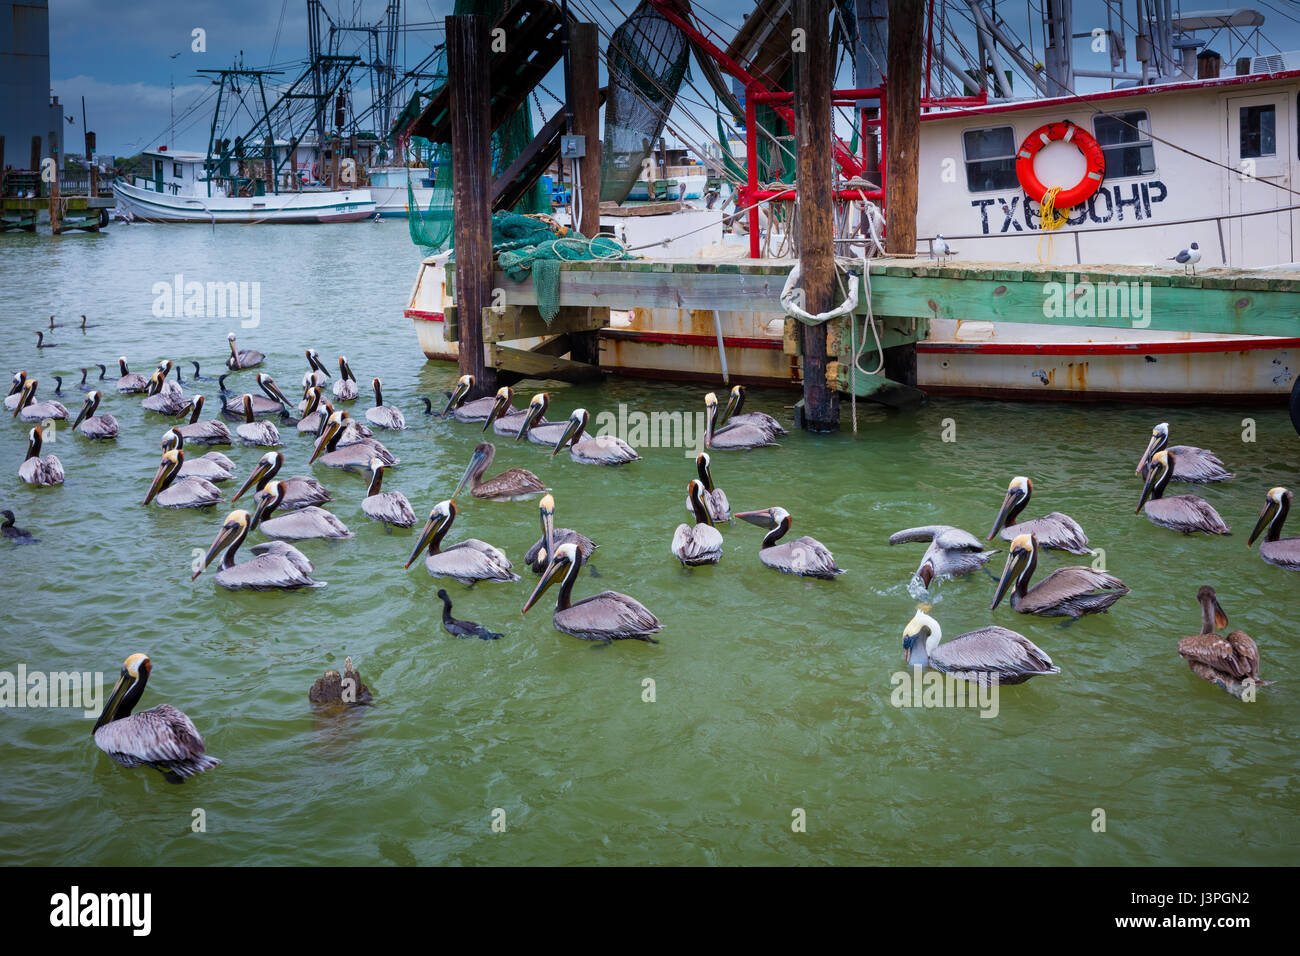 Pelicans in Galveston harbor. Pelicans are a genus of large water birds that makes up the family Pelecanidae. They - Stock Image